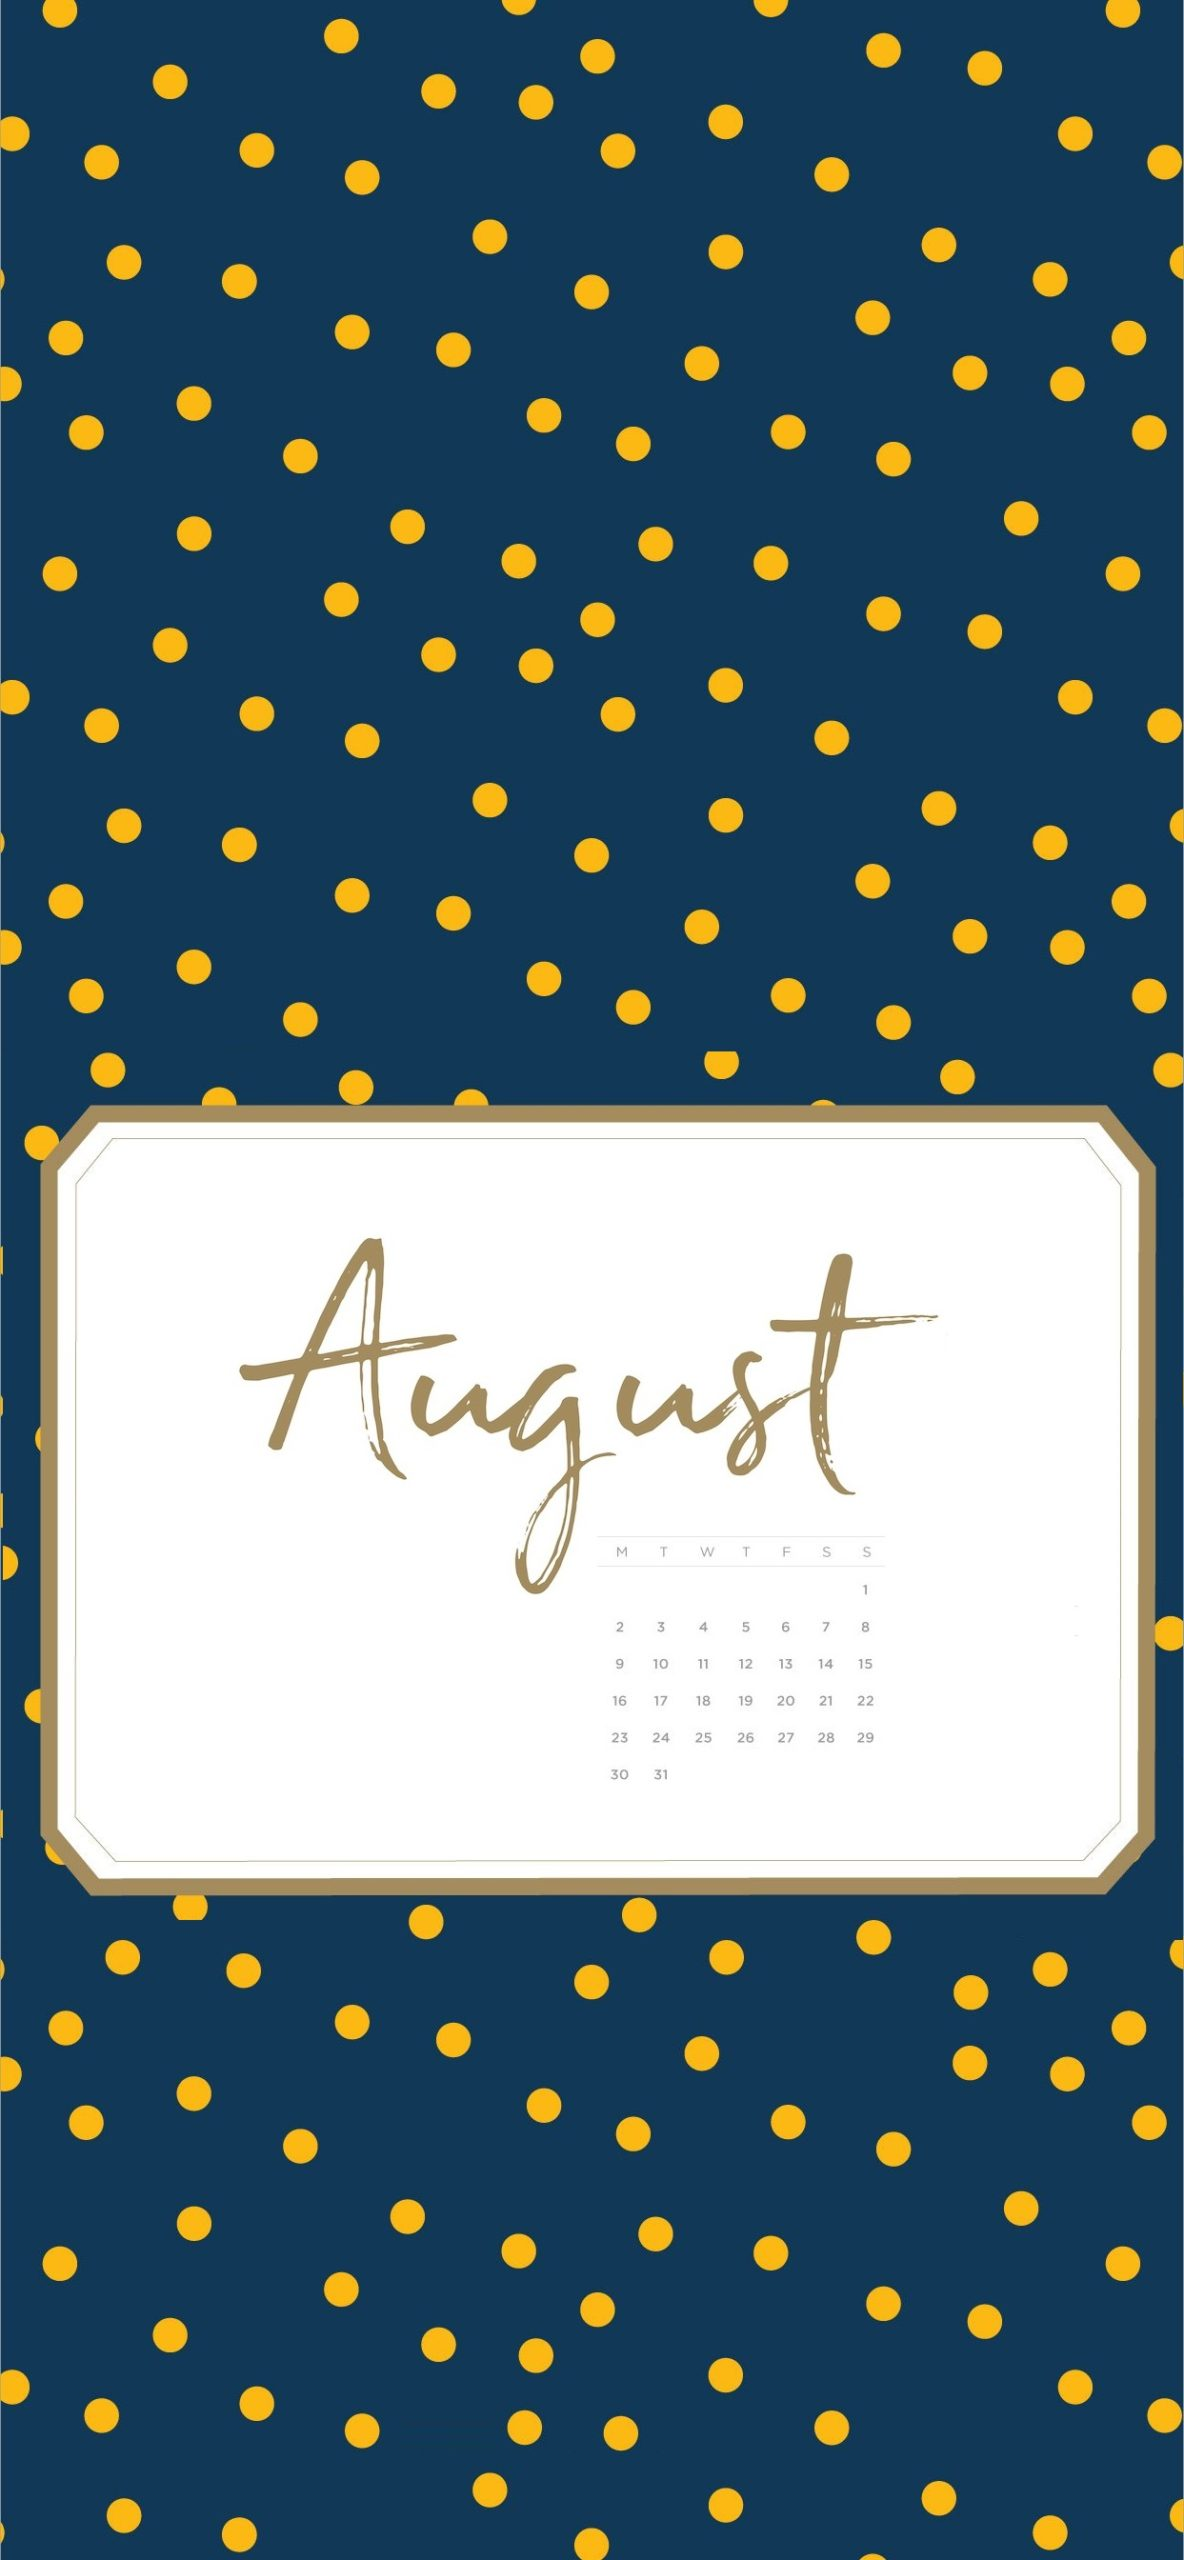 August 2020 Tablets Wallpaper